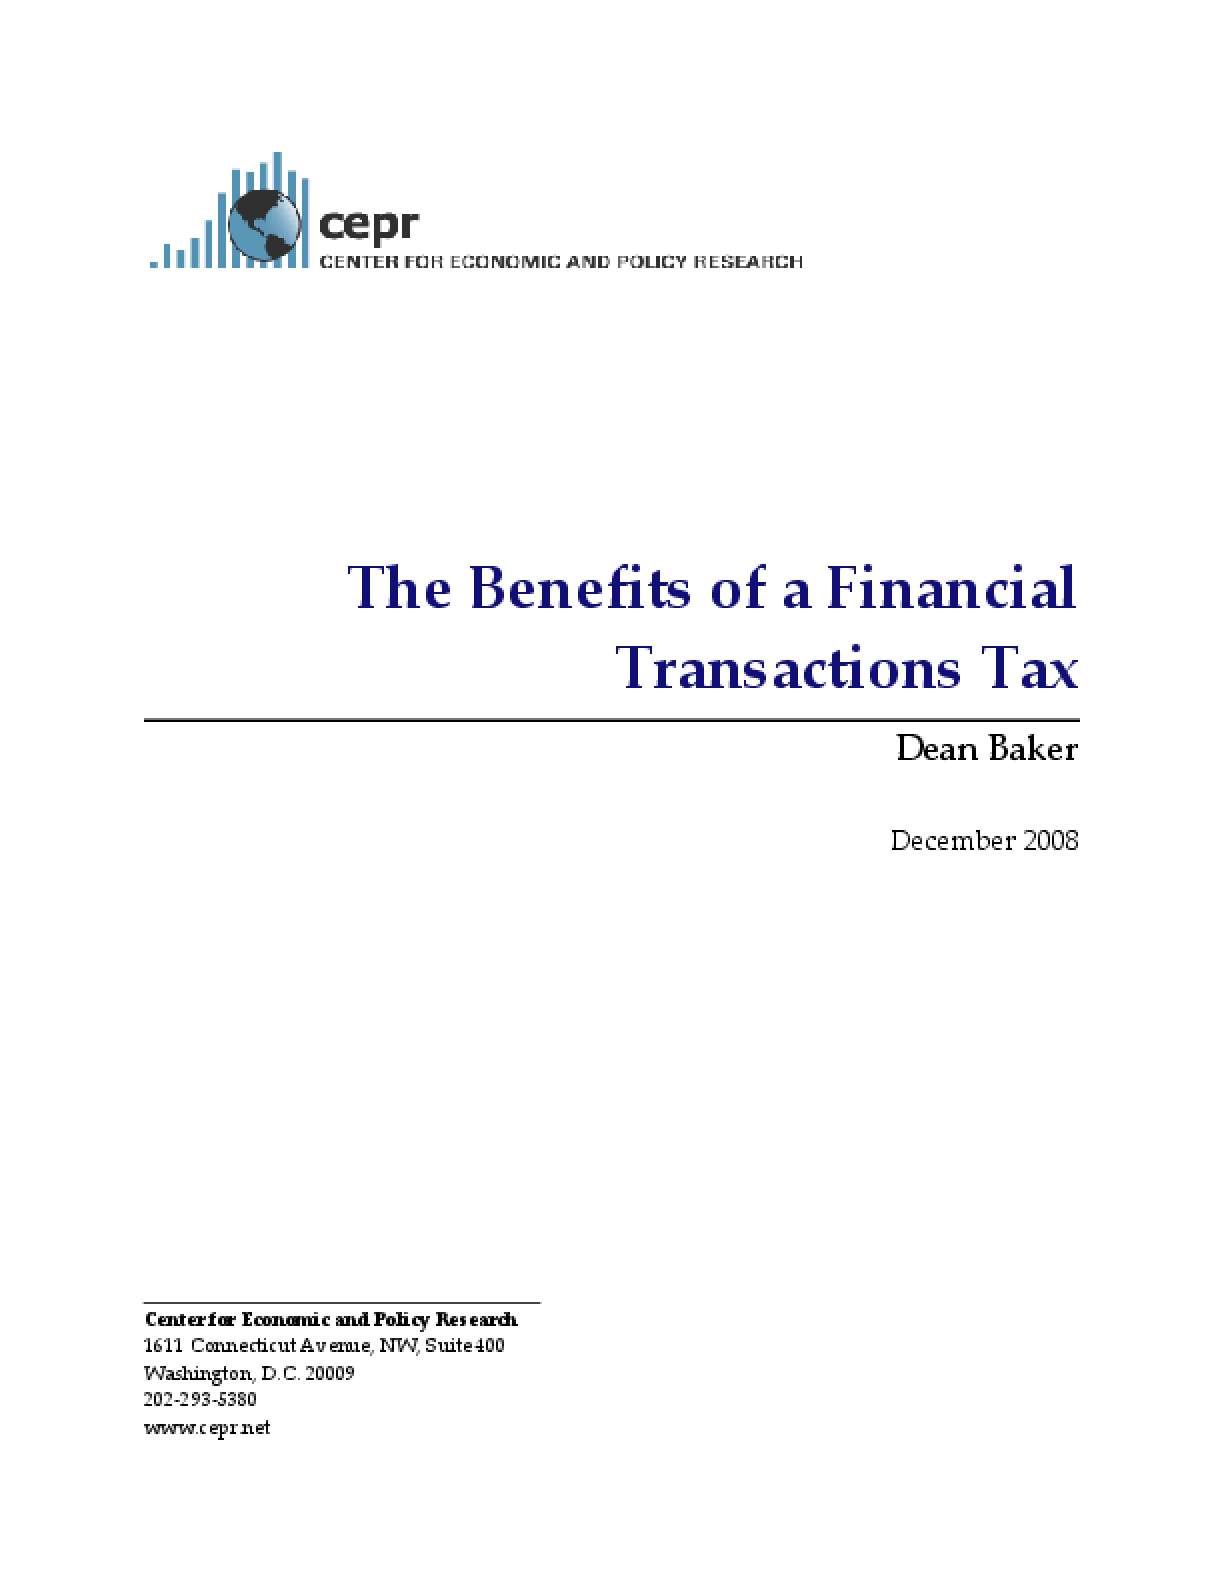 The Benefits of a Financial Transactions Tax